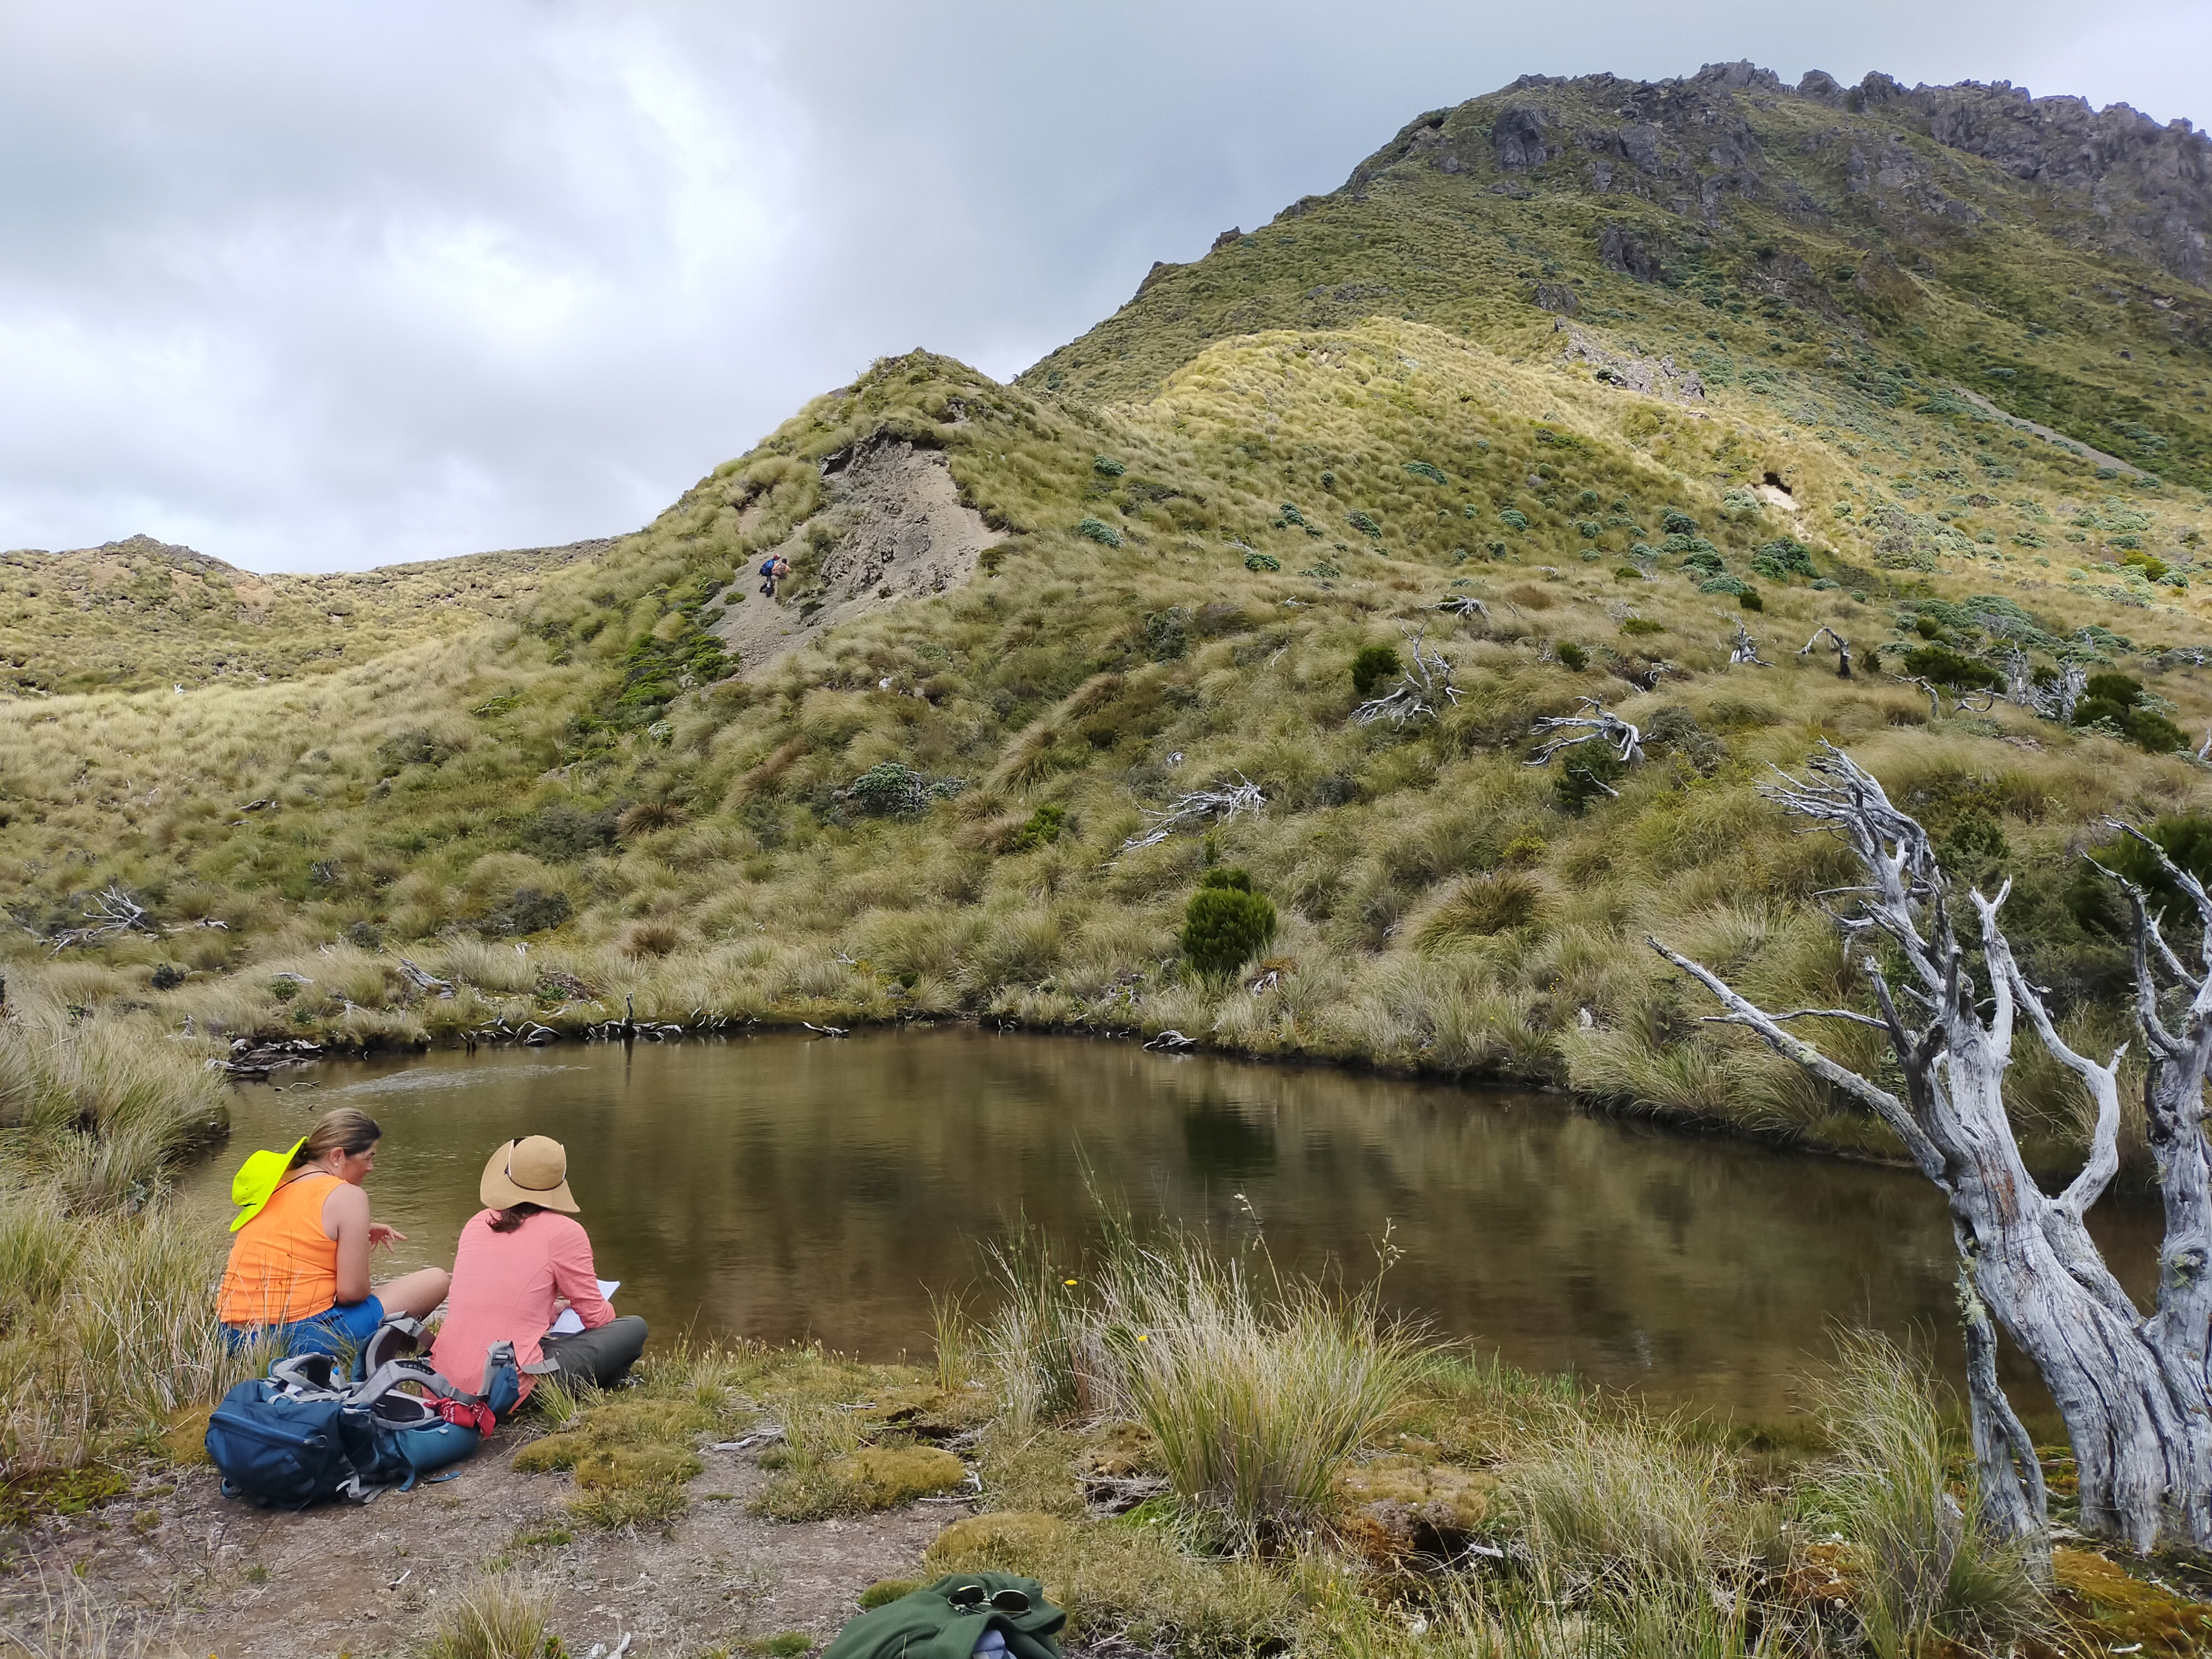 Two people and a pack sitting beside a pond high up on a grassy mountain. There are two other people on the hill in the middle distance.